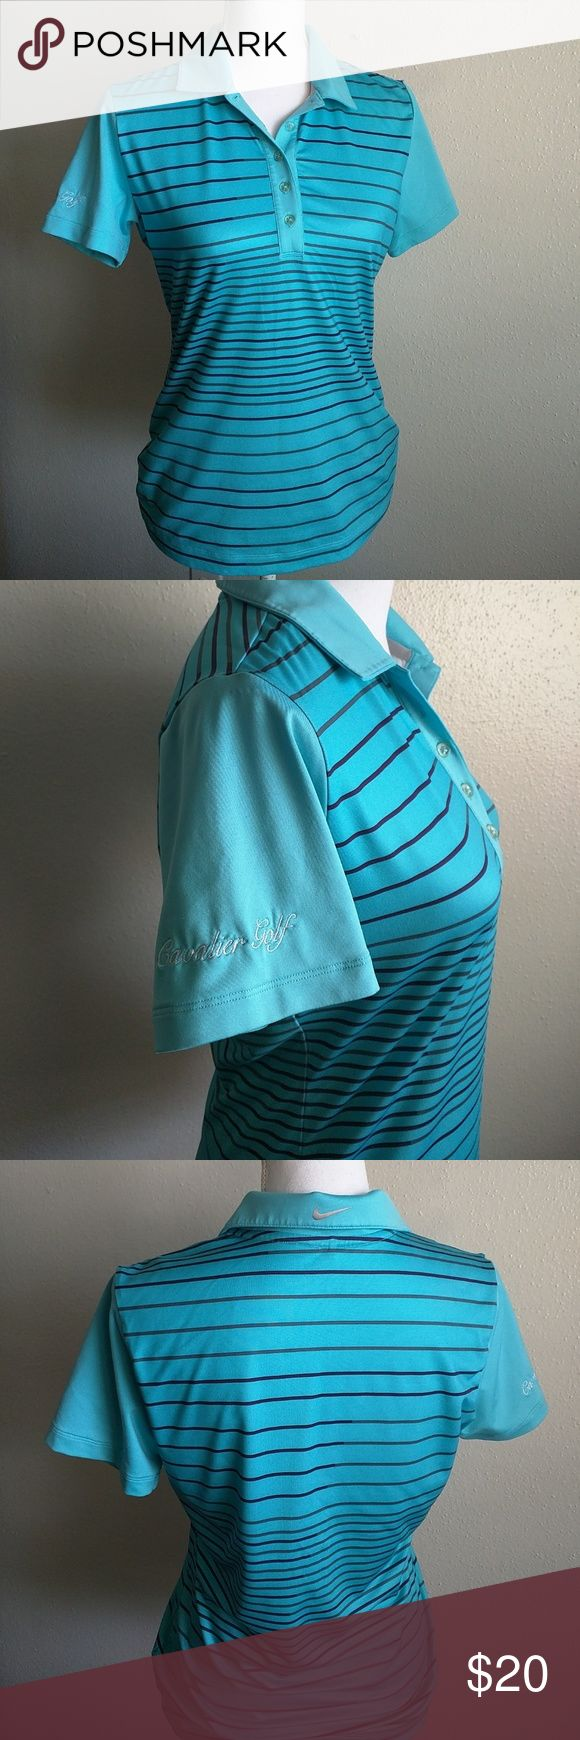 Golf women's shirt like new Like New excellent condition with logo in the sleeve says cavalier golf, if you have any questions please let me know. Nike Tops Tees - Short Sleeve